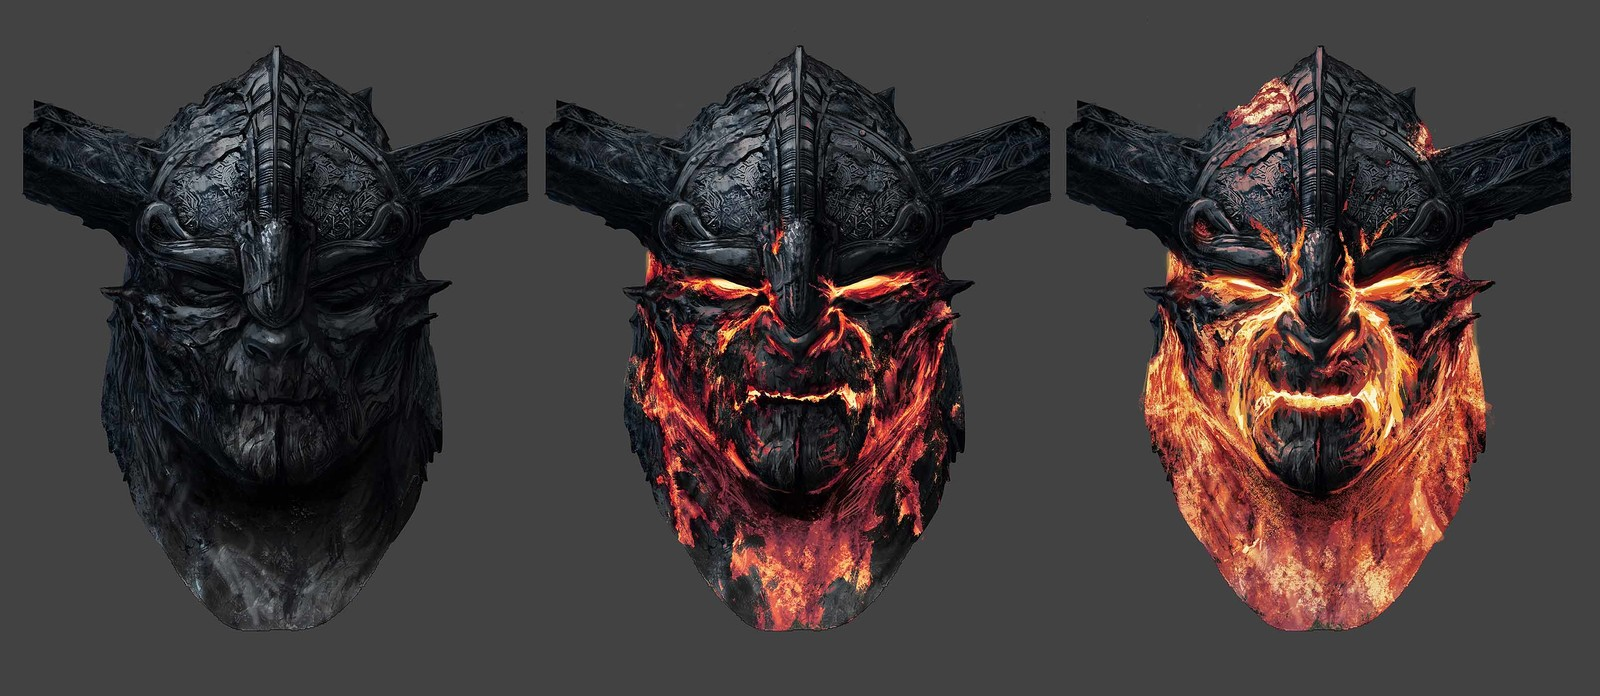 Some exploration of Surtur face for Thor Ragnarok. The idea was that when still this character would be covered by dried dark lava. And then some cracks revealing the hot core beneath are appearing when he is moving and when his expression is changing. Ba